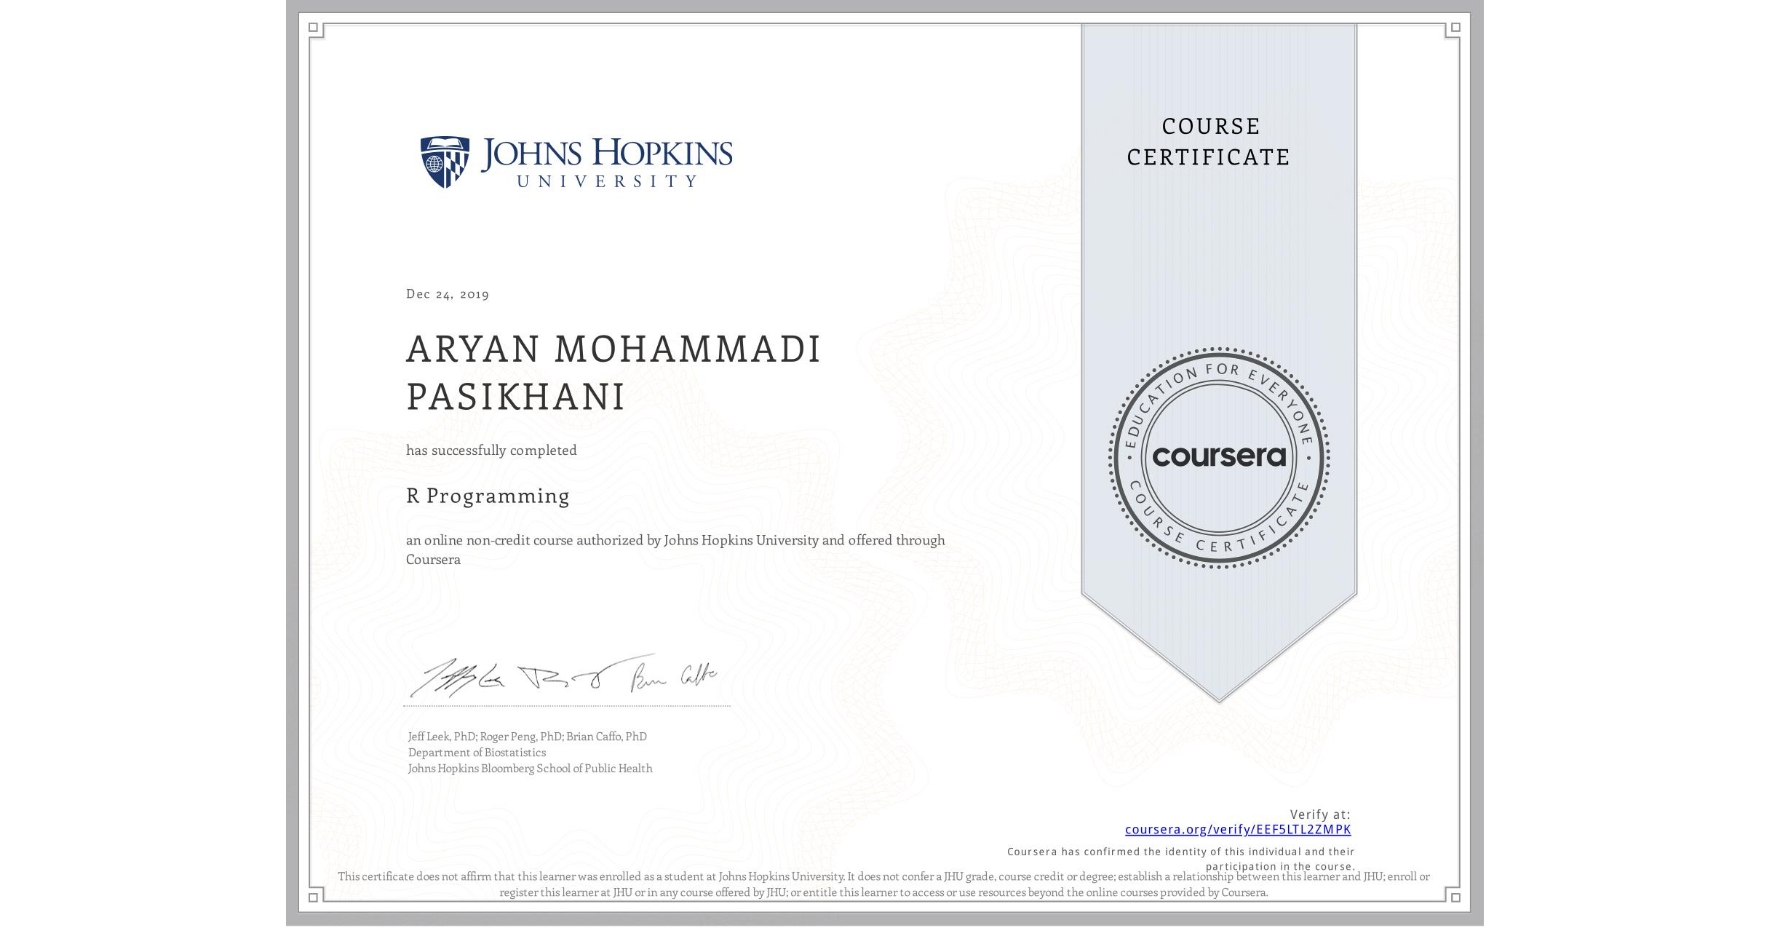 View certificate for ARYAN MOHAMMADI PASIKHANI, R Programming, an online non-credit course authorized by Johns Hopkins University and offered through Coursera